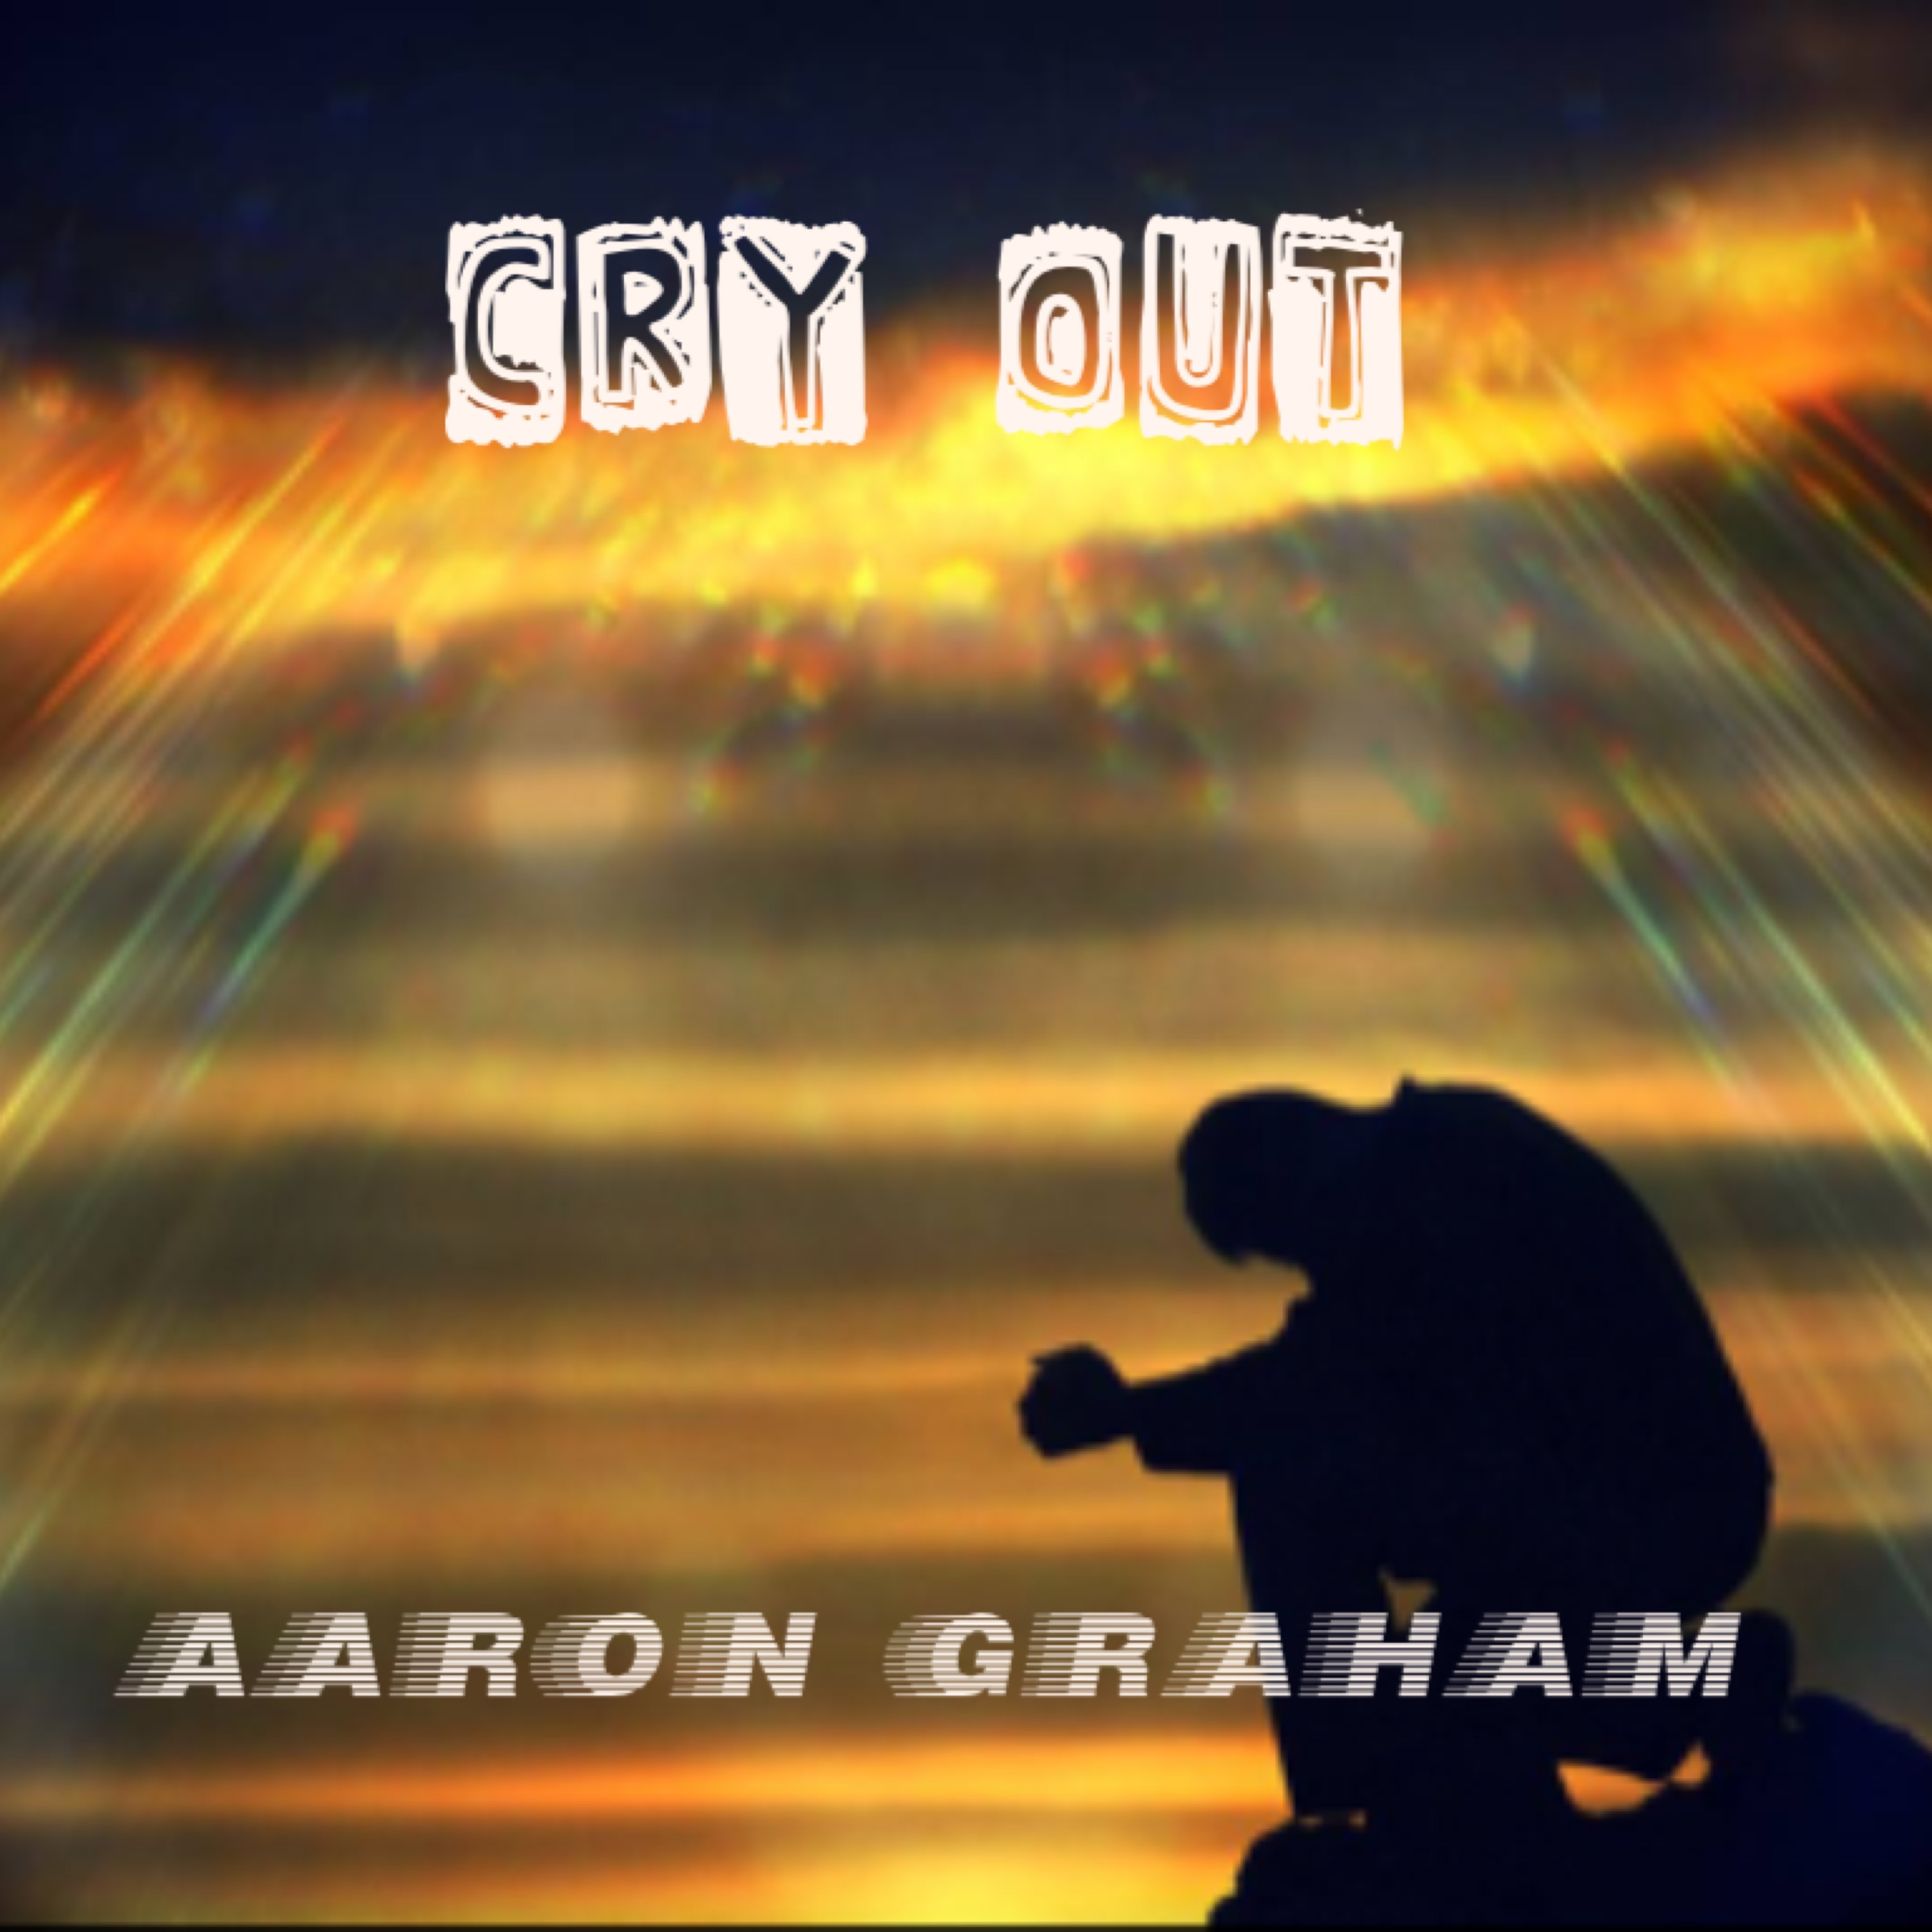 Aaron Graham - Cry Out